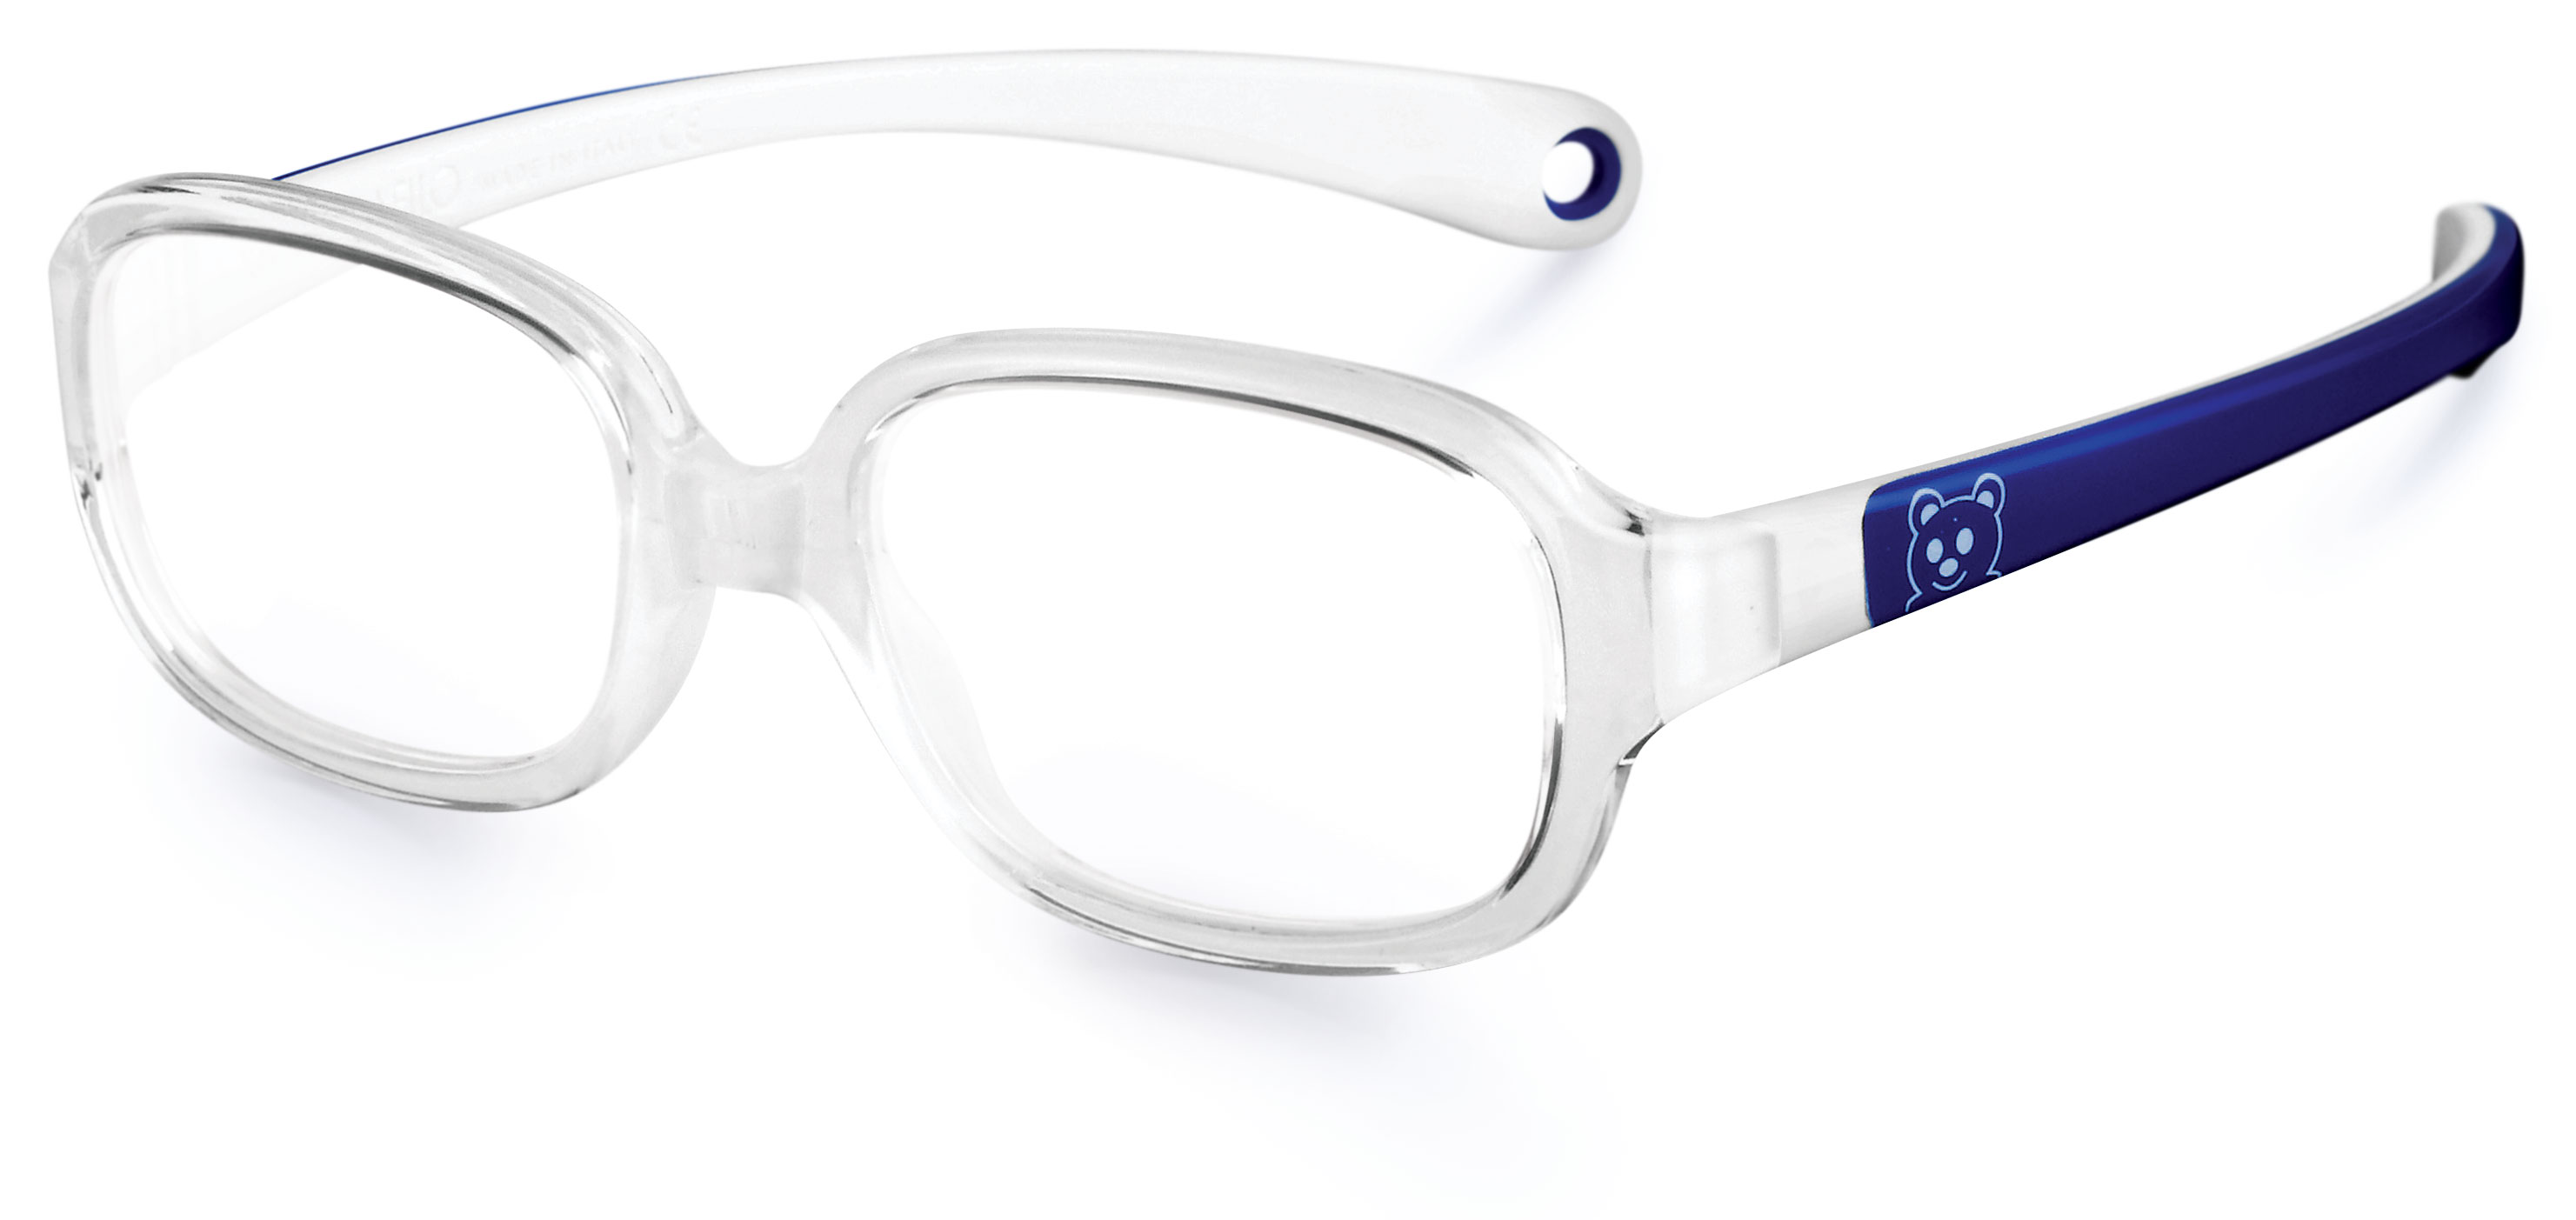 SA 0002 eyewear from Kids By Safilo